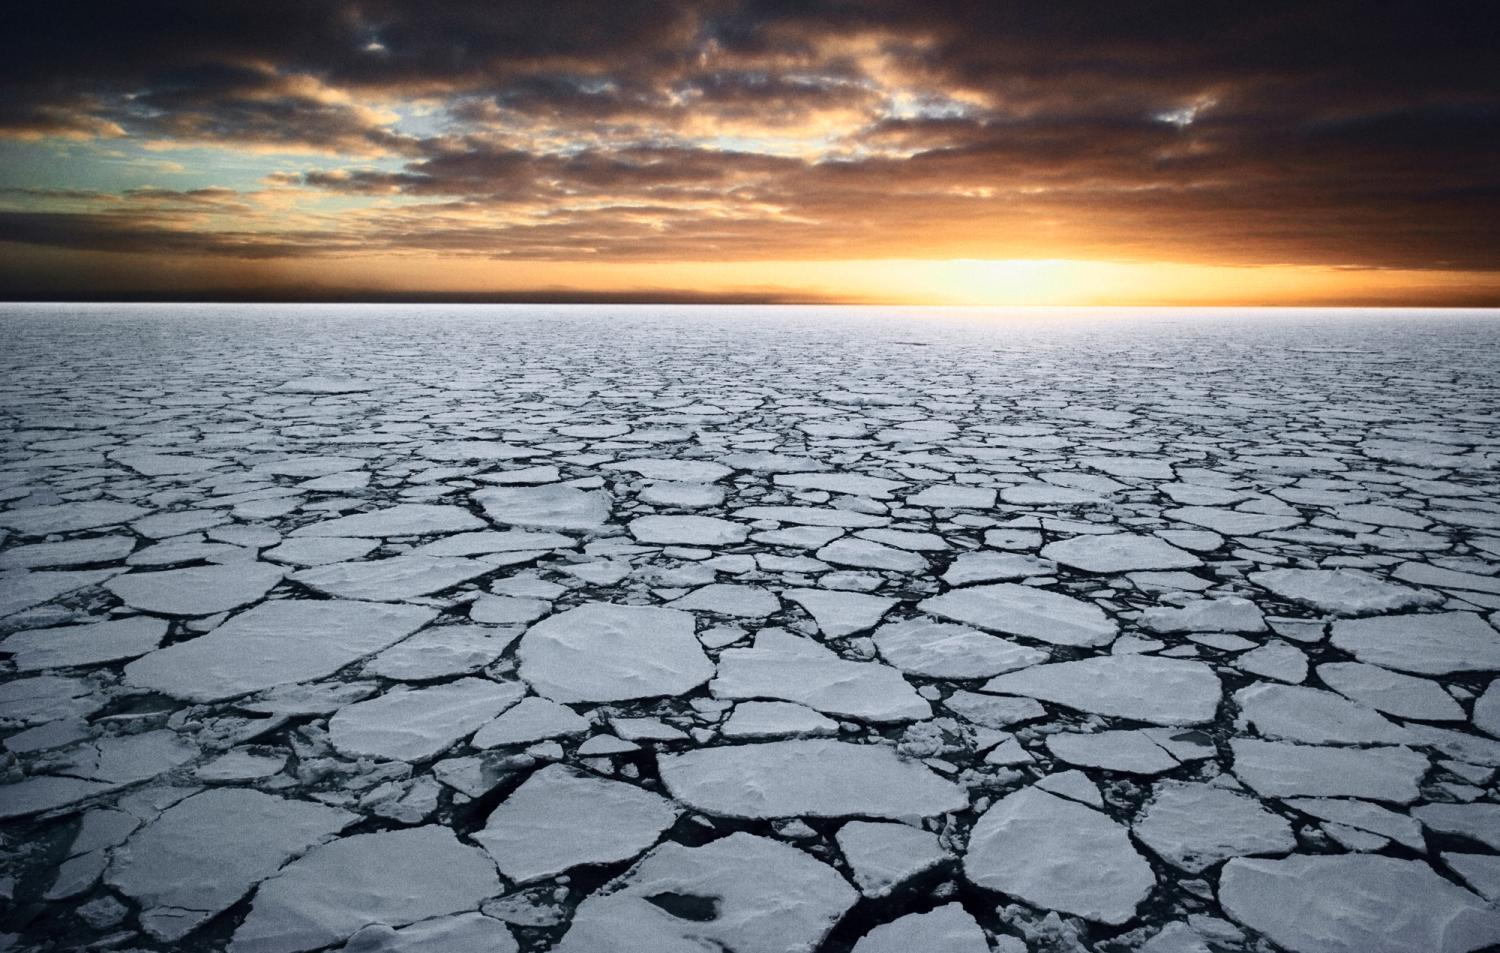 Sea ice broken into small pieces with sunrise in the background.